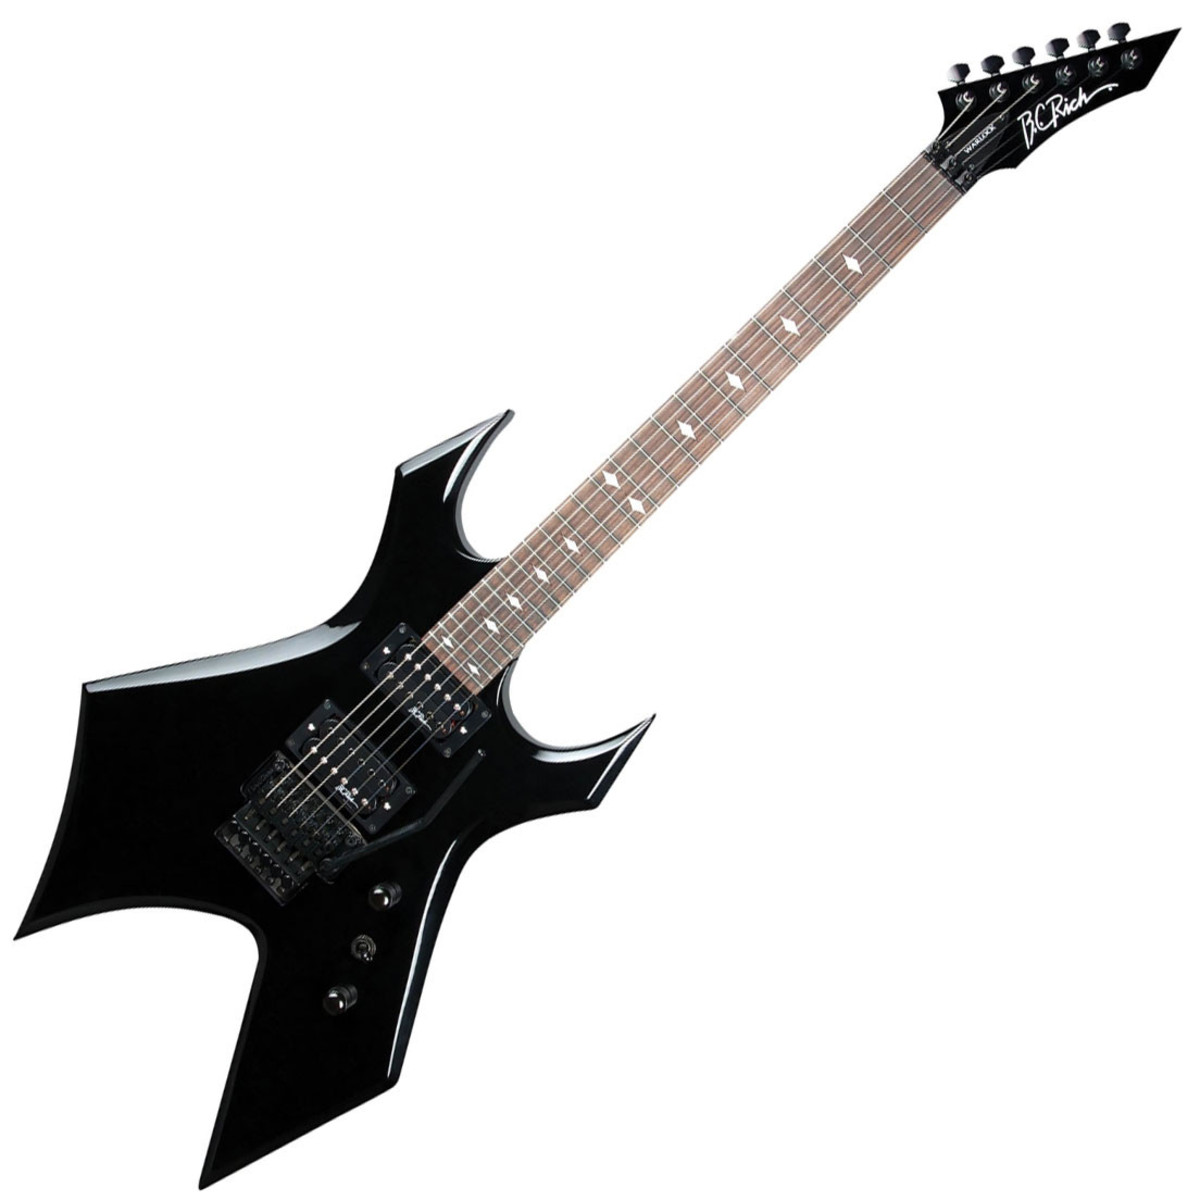 disc bc rich warlock fr electric guitar black at gear4music. Black Bedroom Furniture Sets. Home Design Ideas